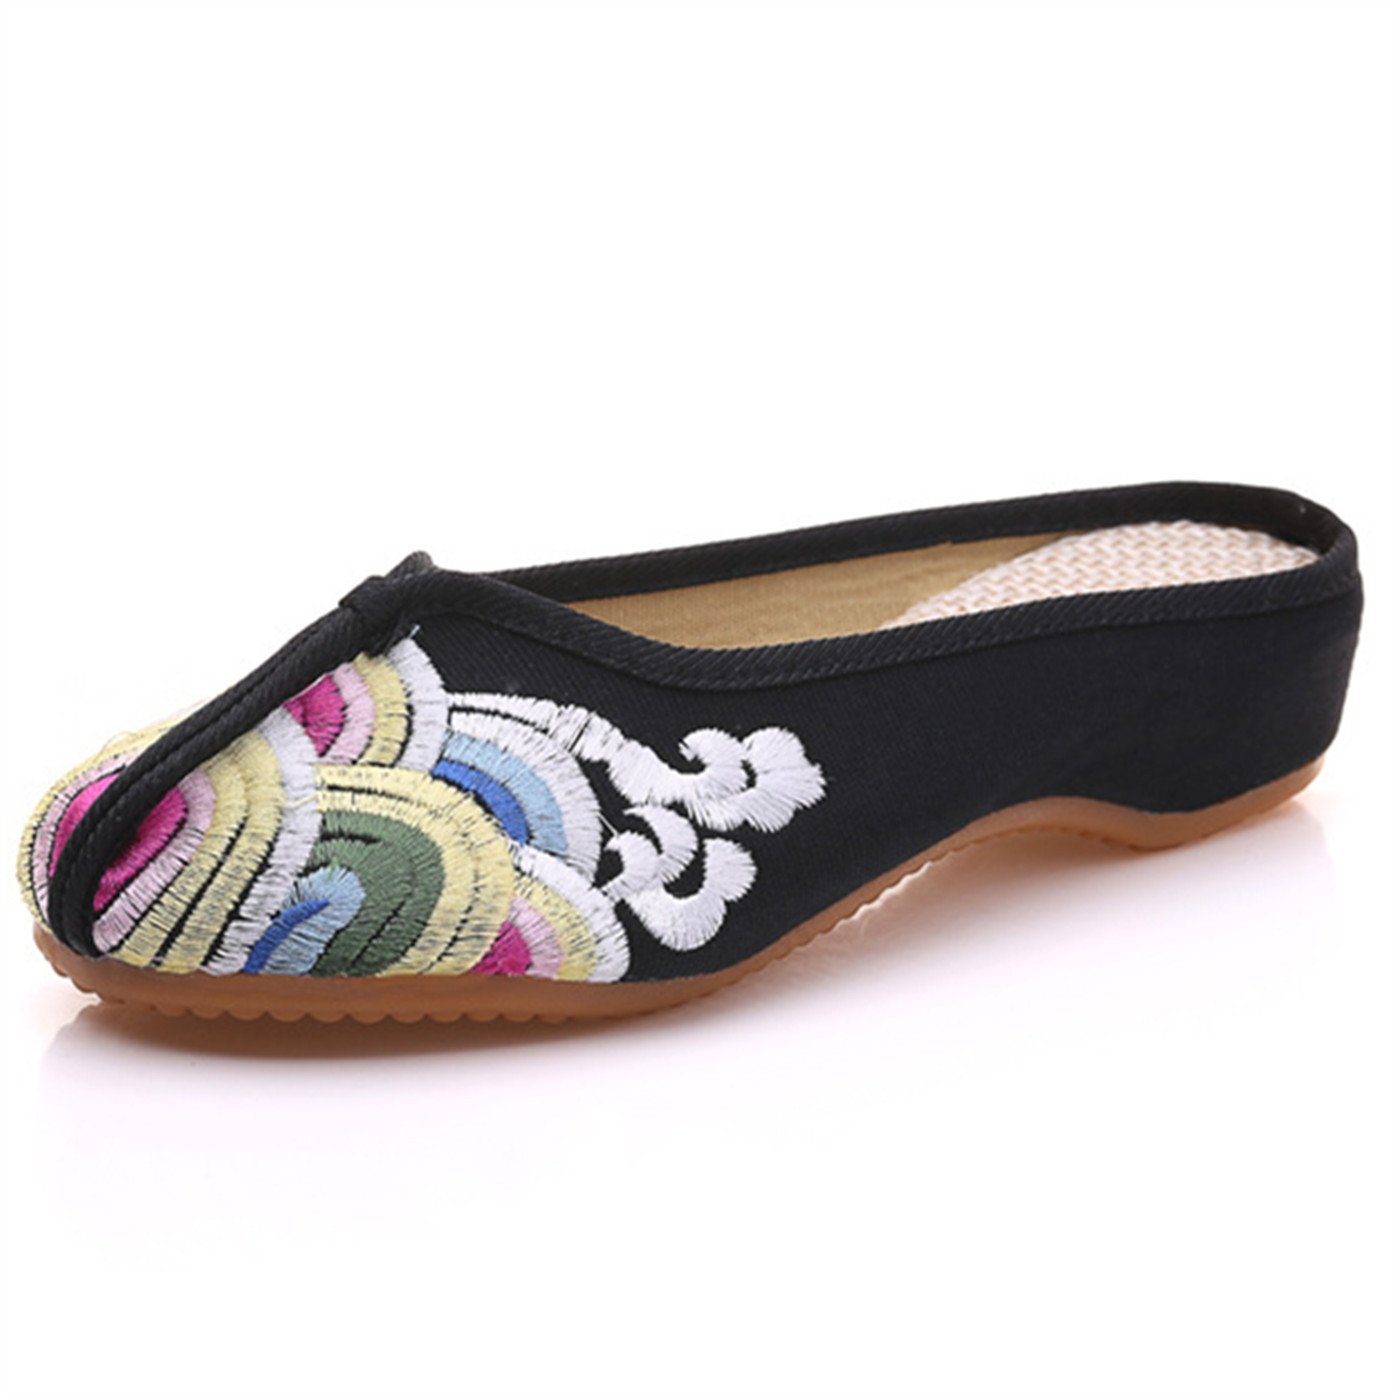 Qhome Womens Chinese Style Wave Print Low Heel Slippers Sandals